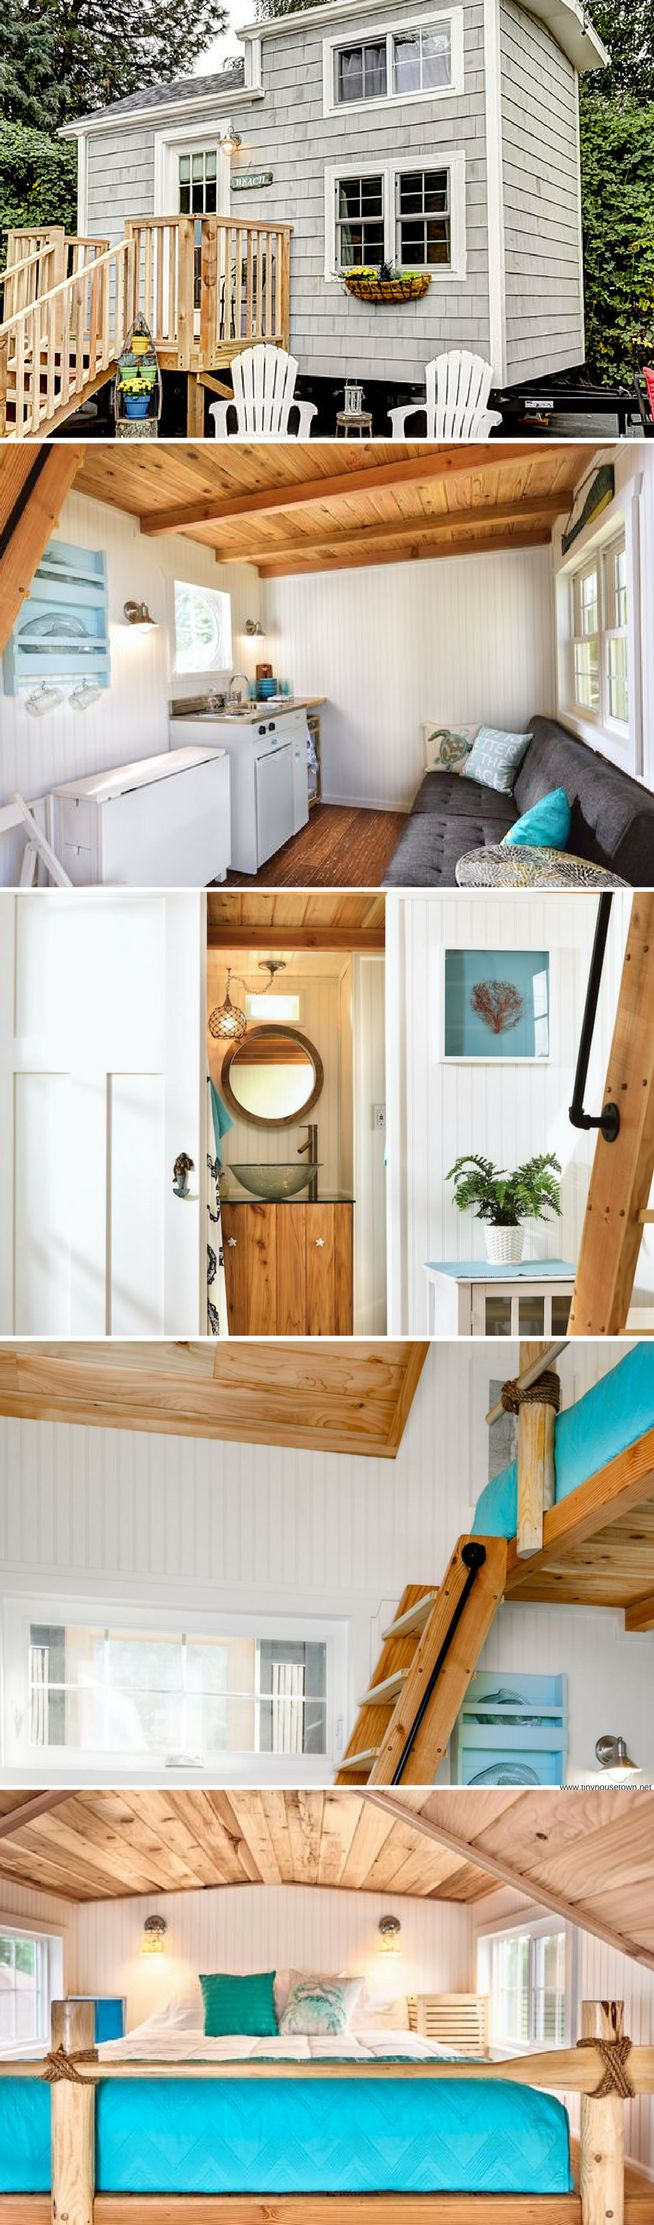 The Beach tiny house at the Tiny Digs Hotel in Portland